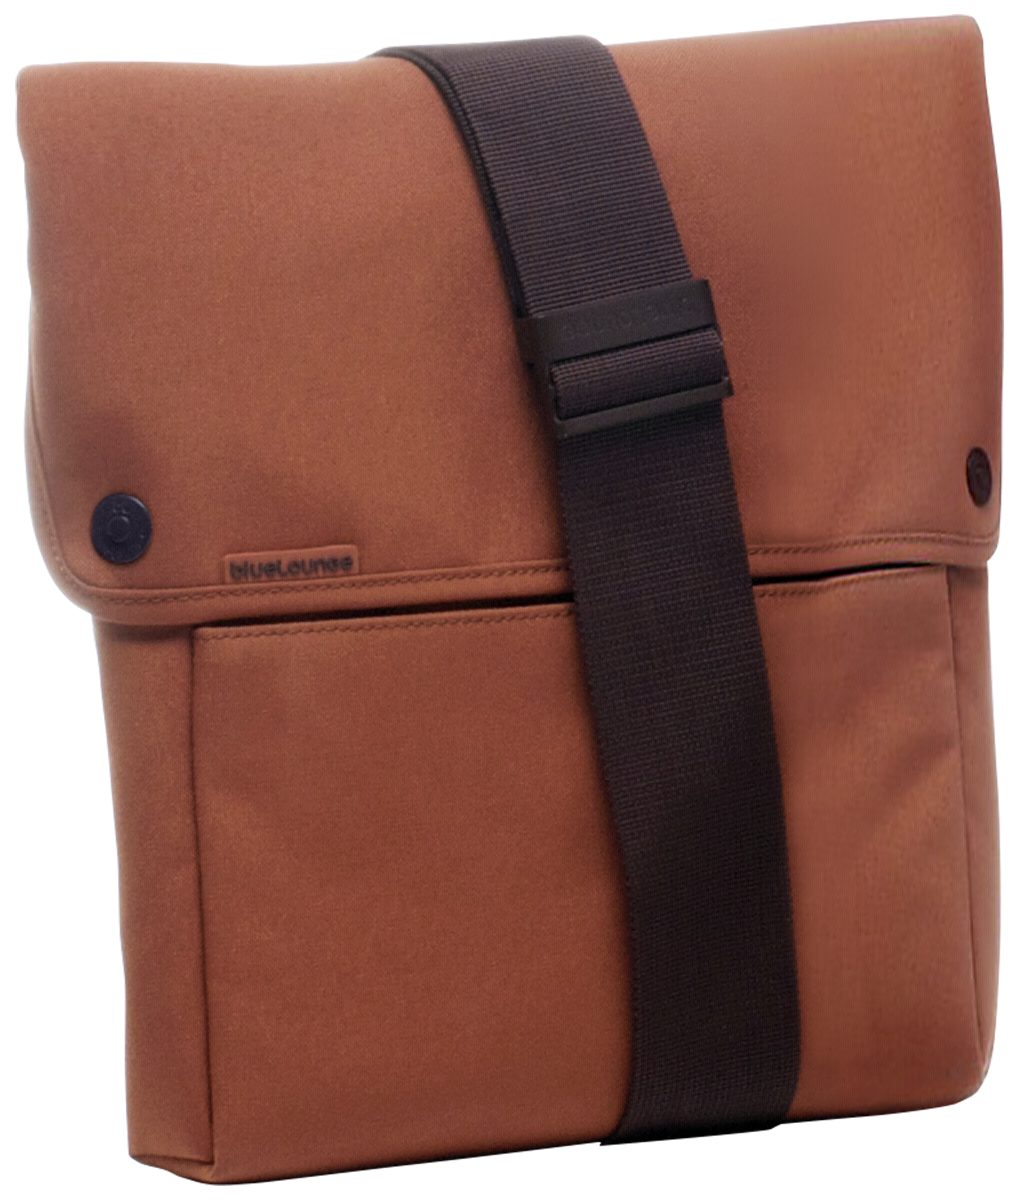 Bluelounge Tasche »Eco-Friendly Bags iPad Sling, Rust«